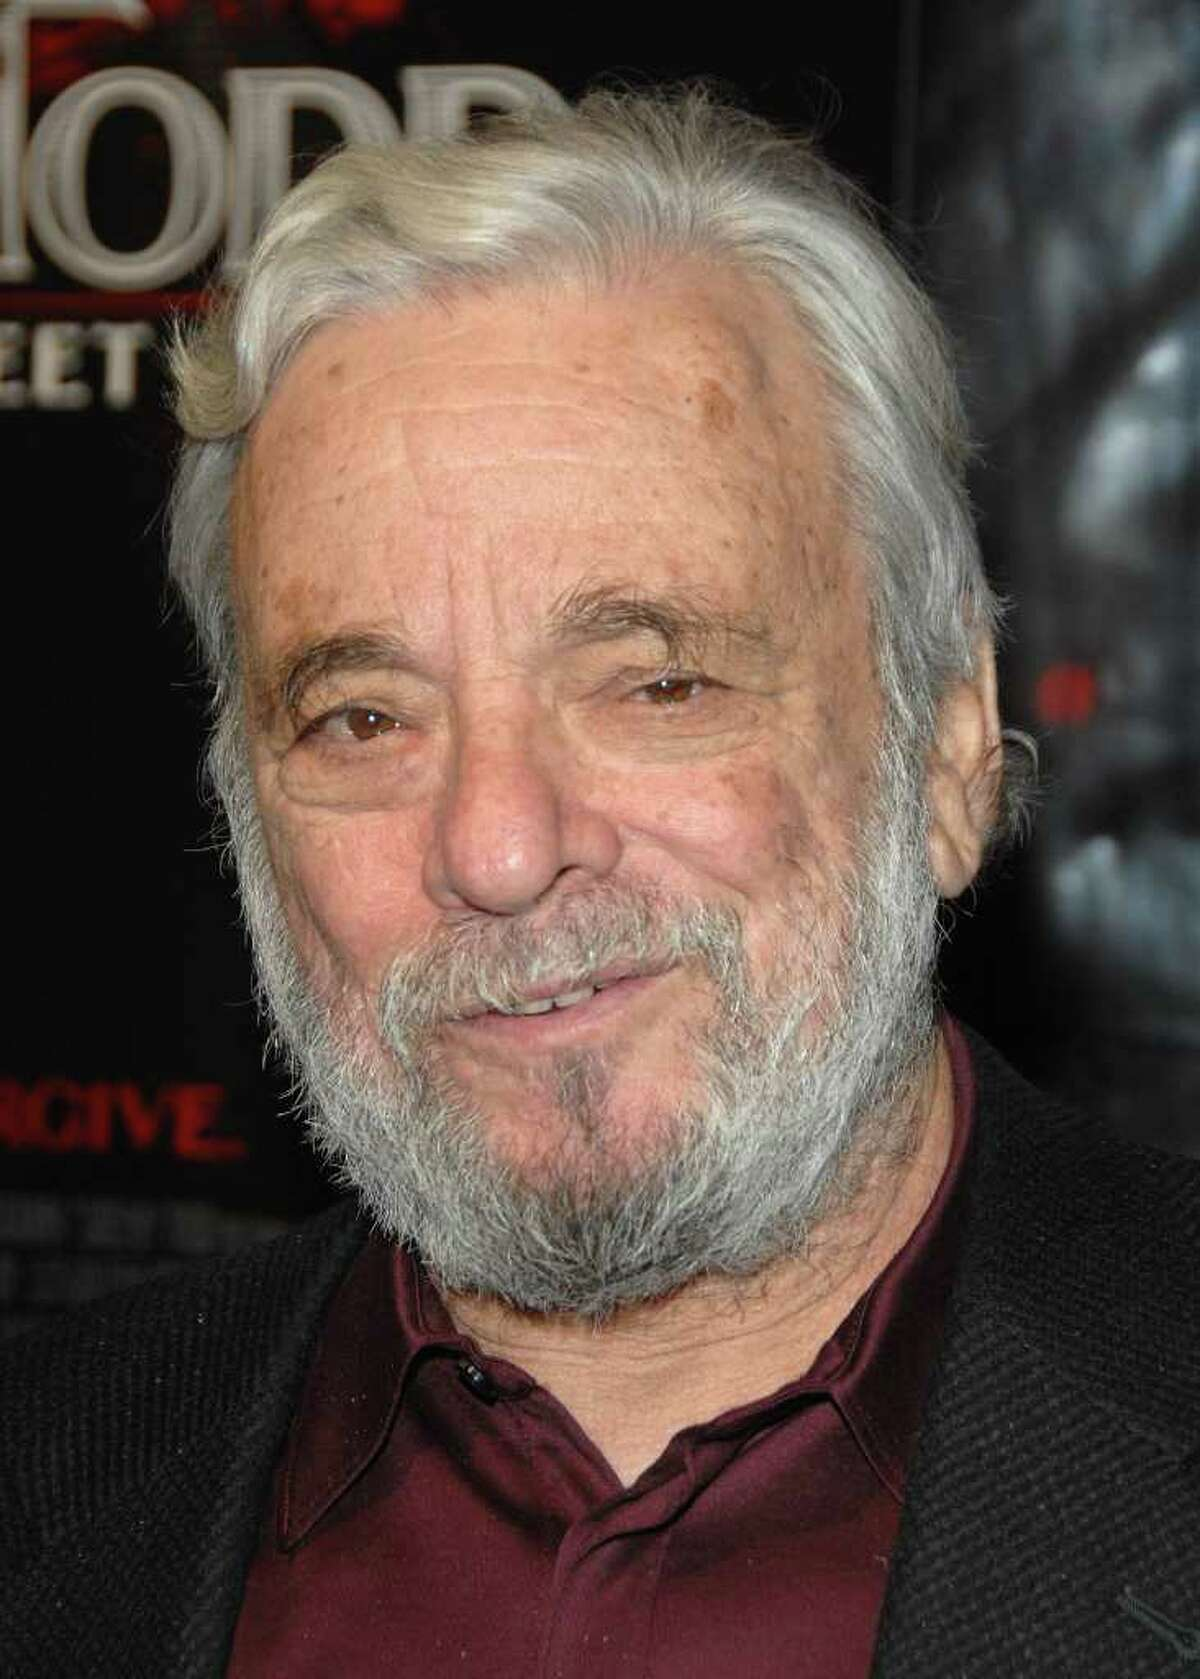 FILE - In this Dec. 3, 2007 file photo, composer Stephen Sondheim arrives at the premiere of